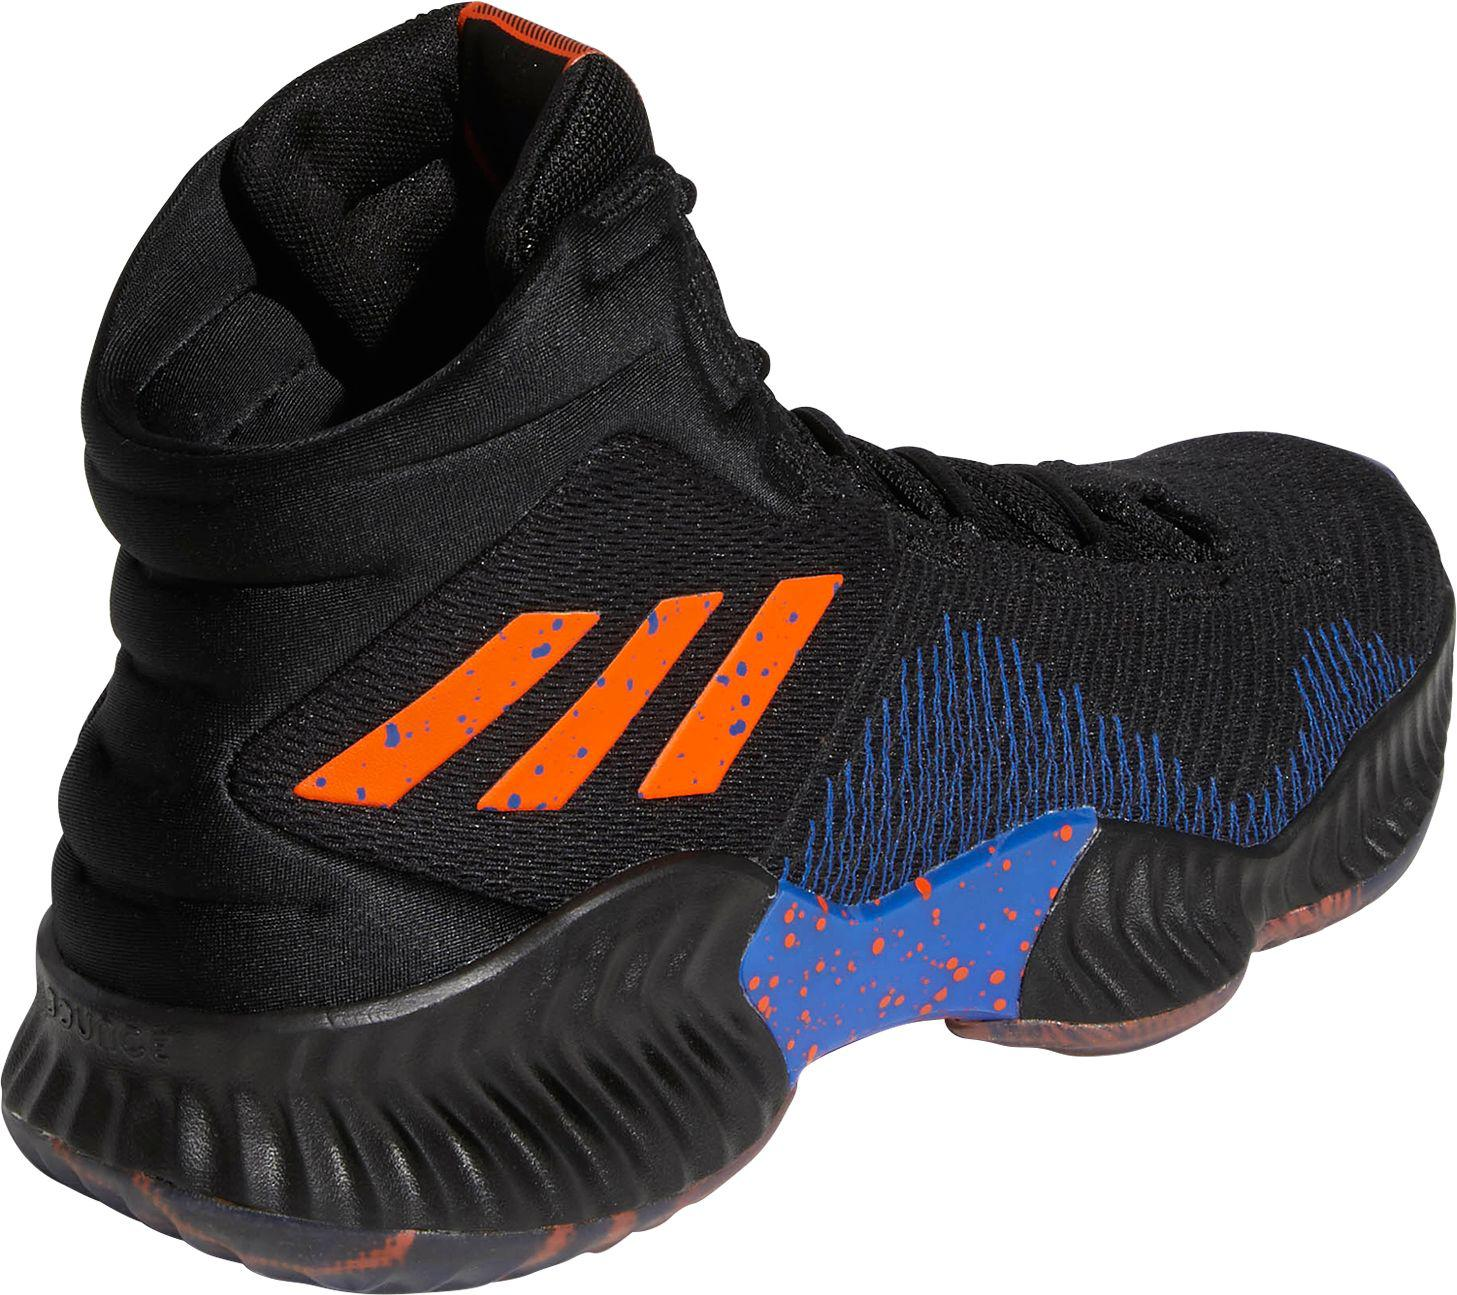 36d70b7a7 Adidas - Multicolor Pro Bounce 2018 Basketball Shoes for Men - Lyst